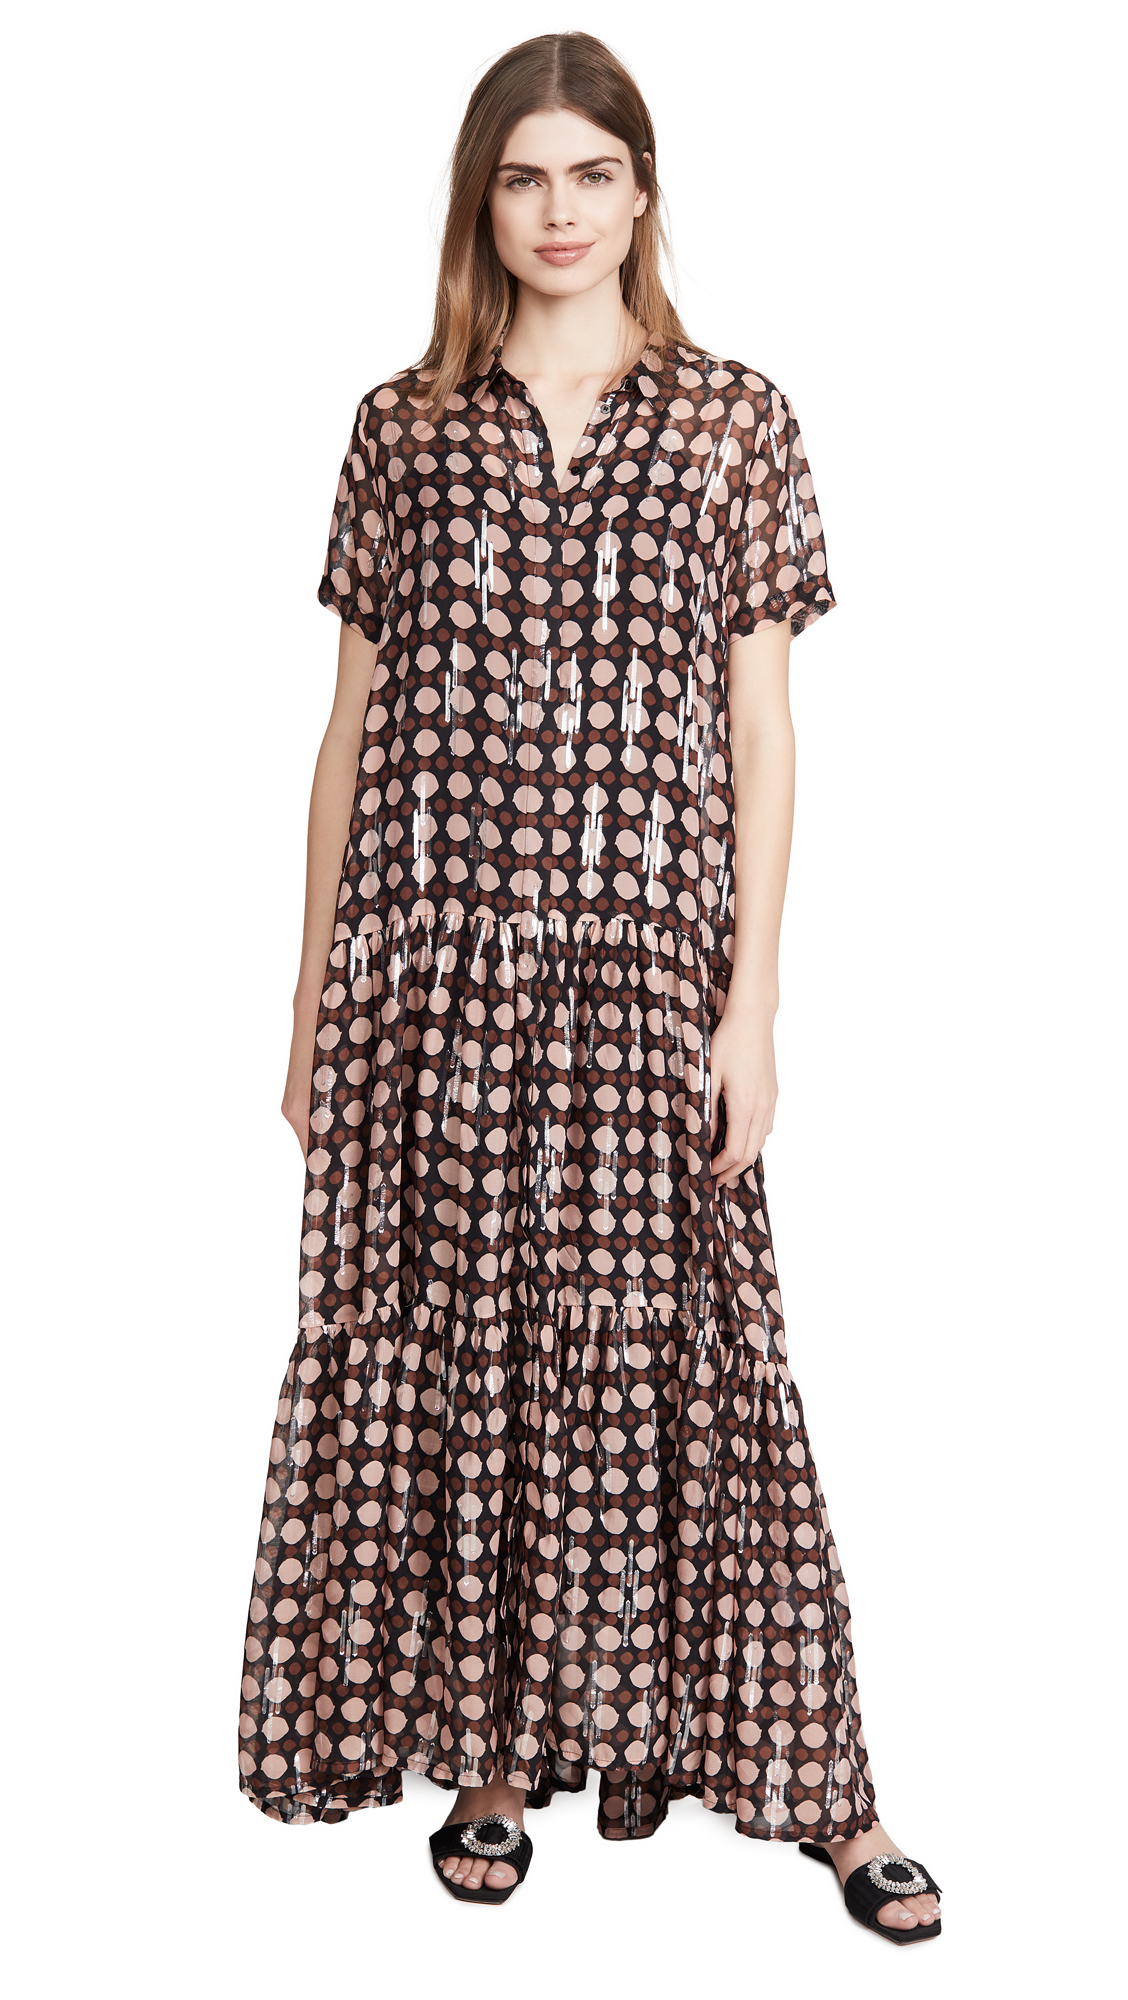 MUNTHE Evelyn Dress - 30% Off Sale